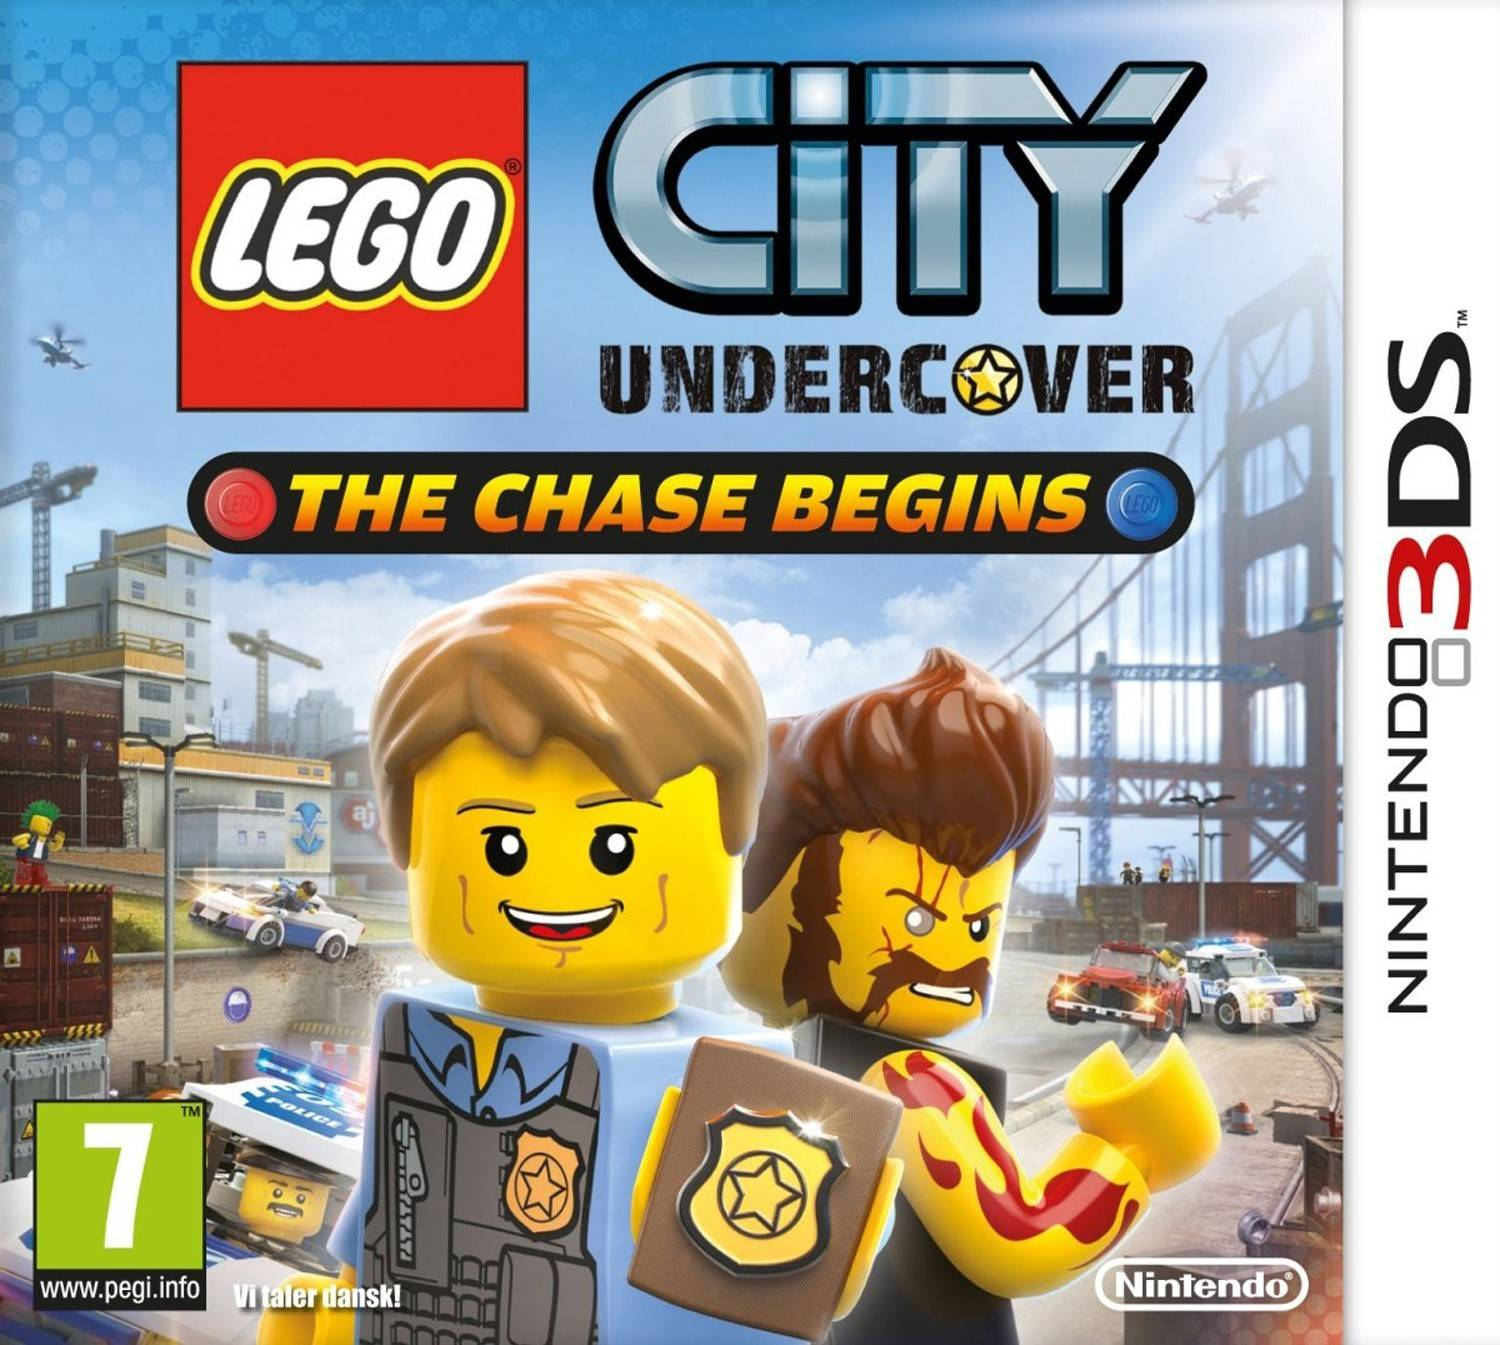 Nintendo LEGO City: Undercover - The Chase Begins (3DS)